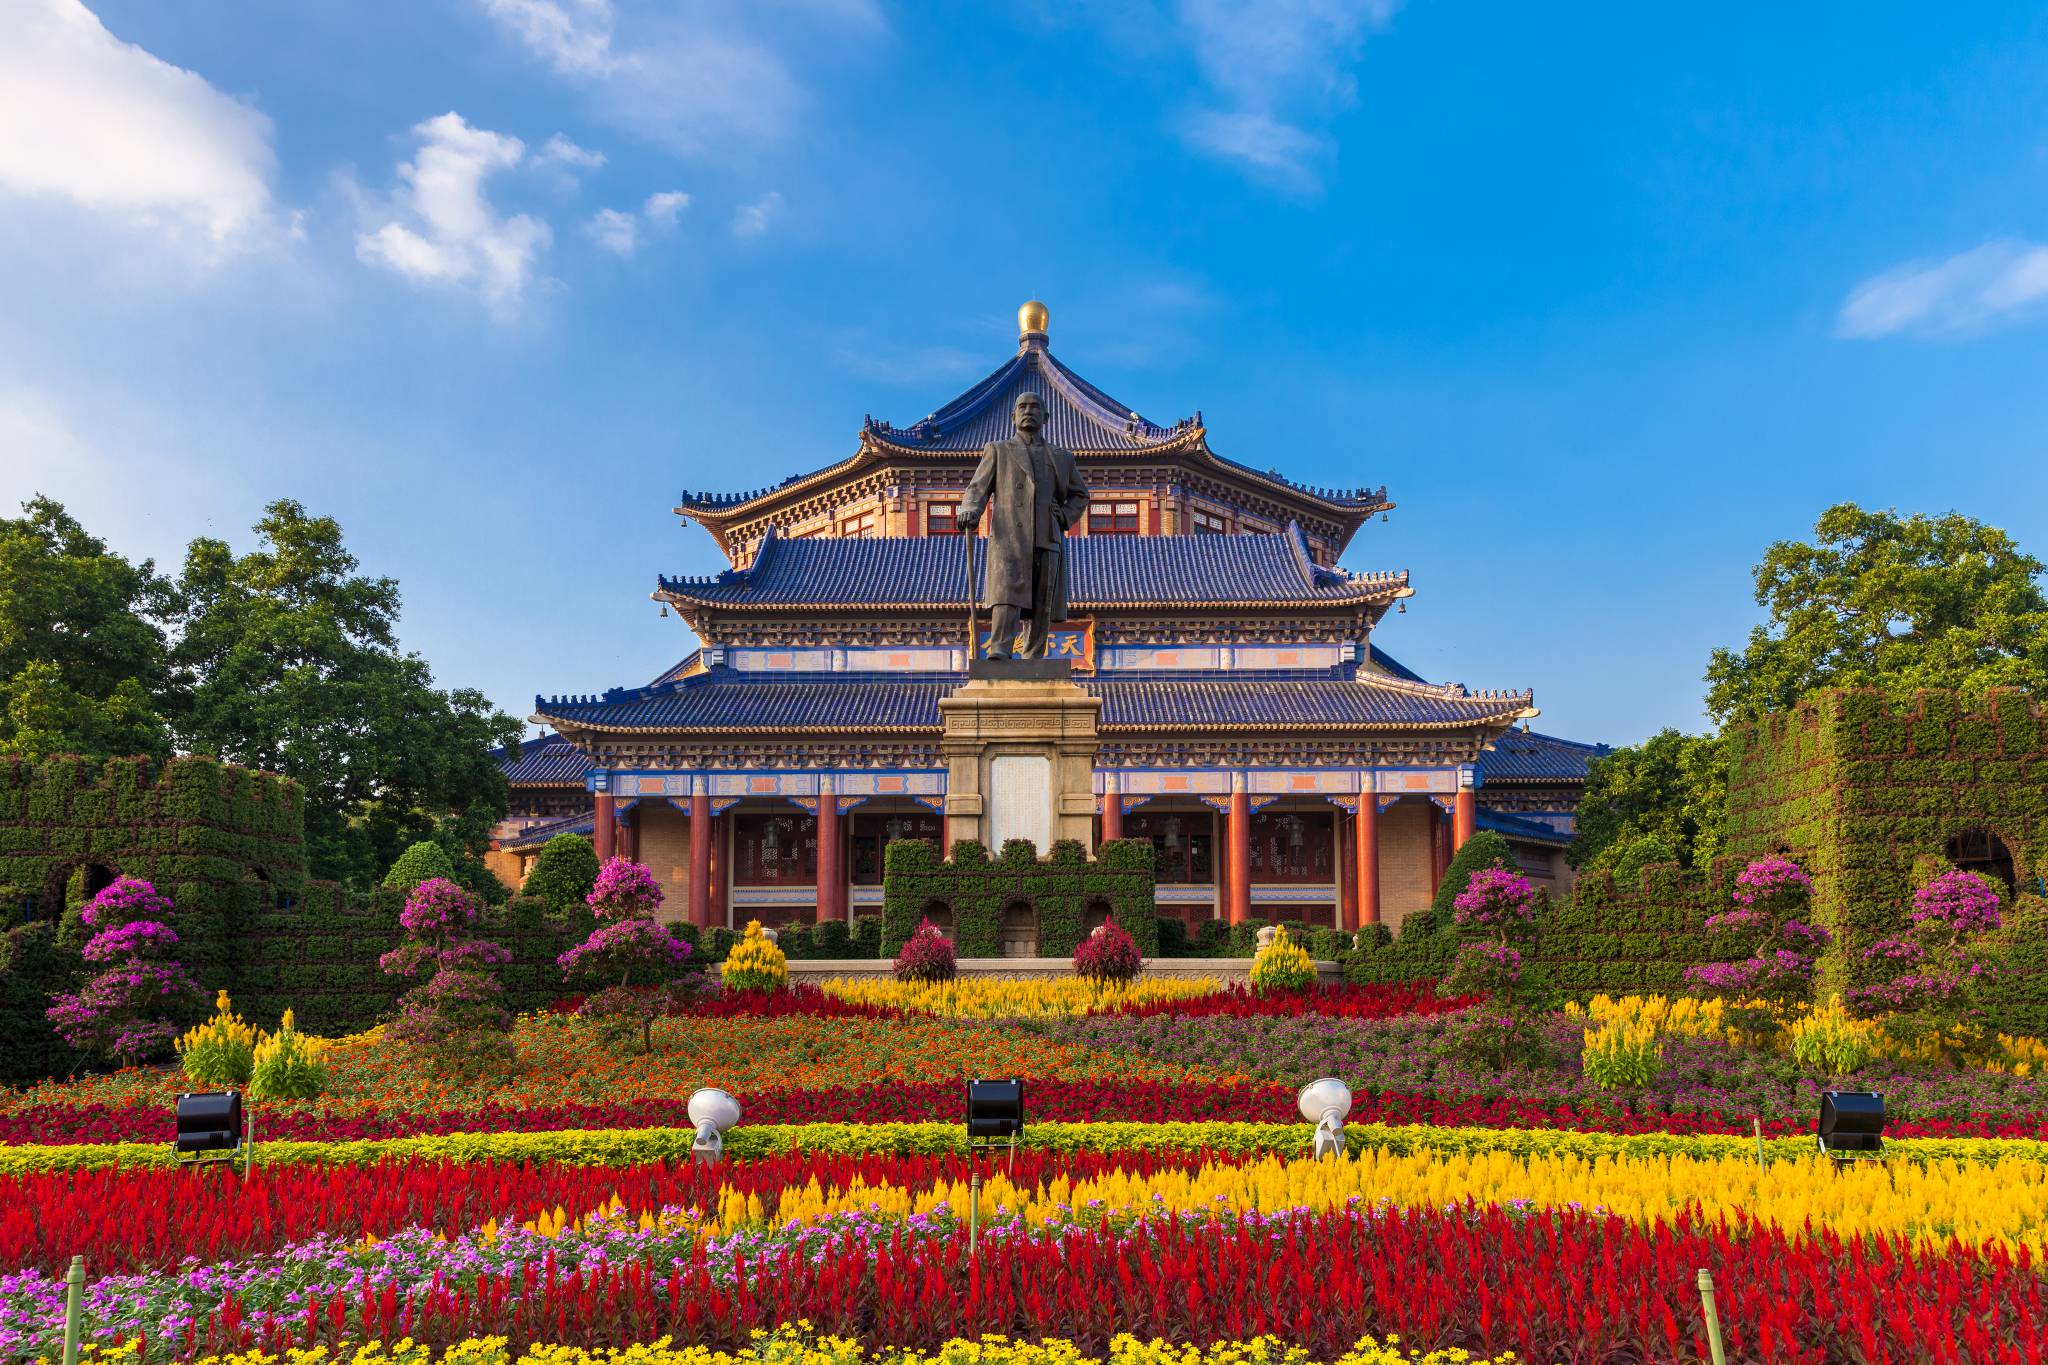 Travel to Guangzhou with eTips Travel Guide